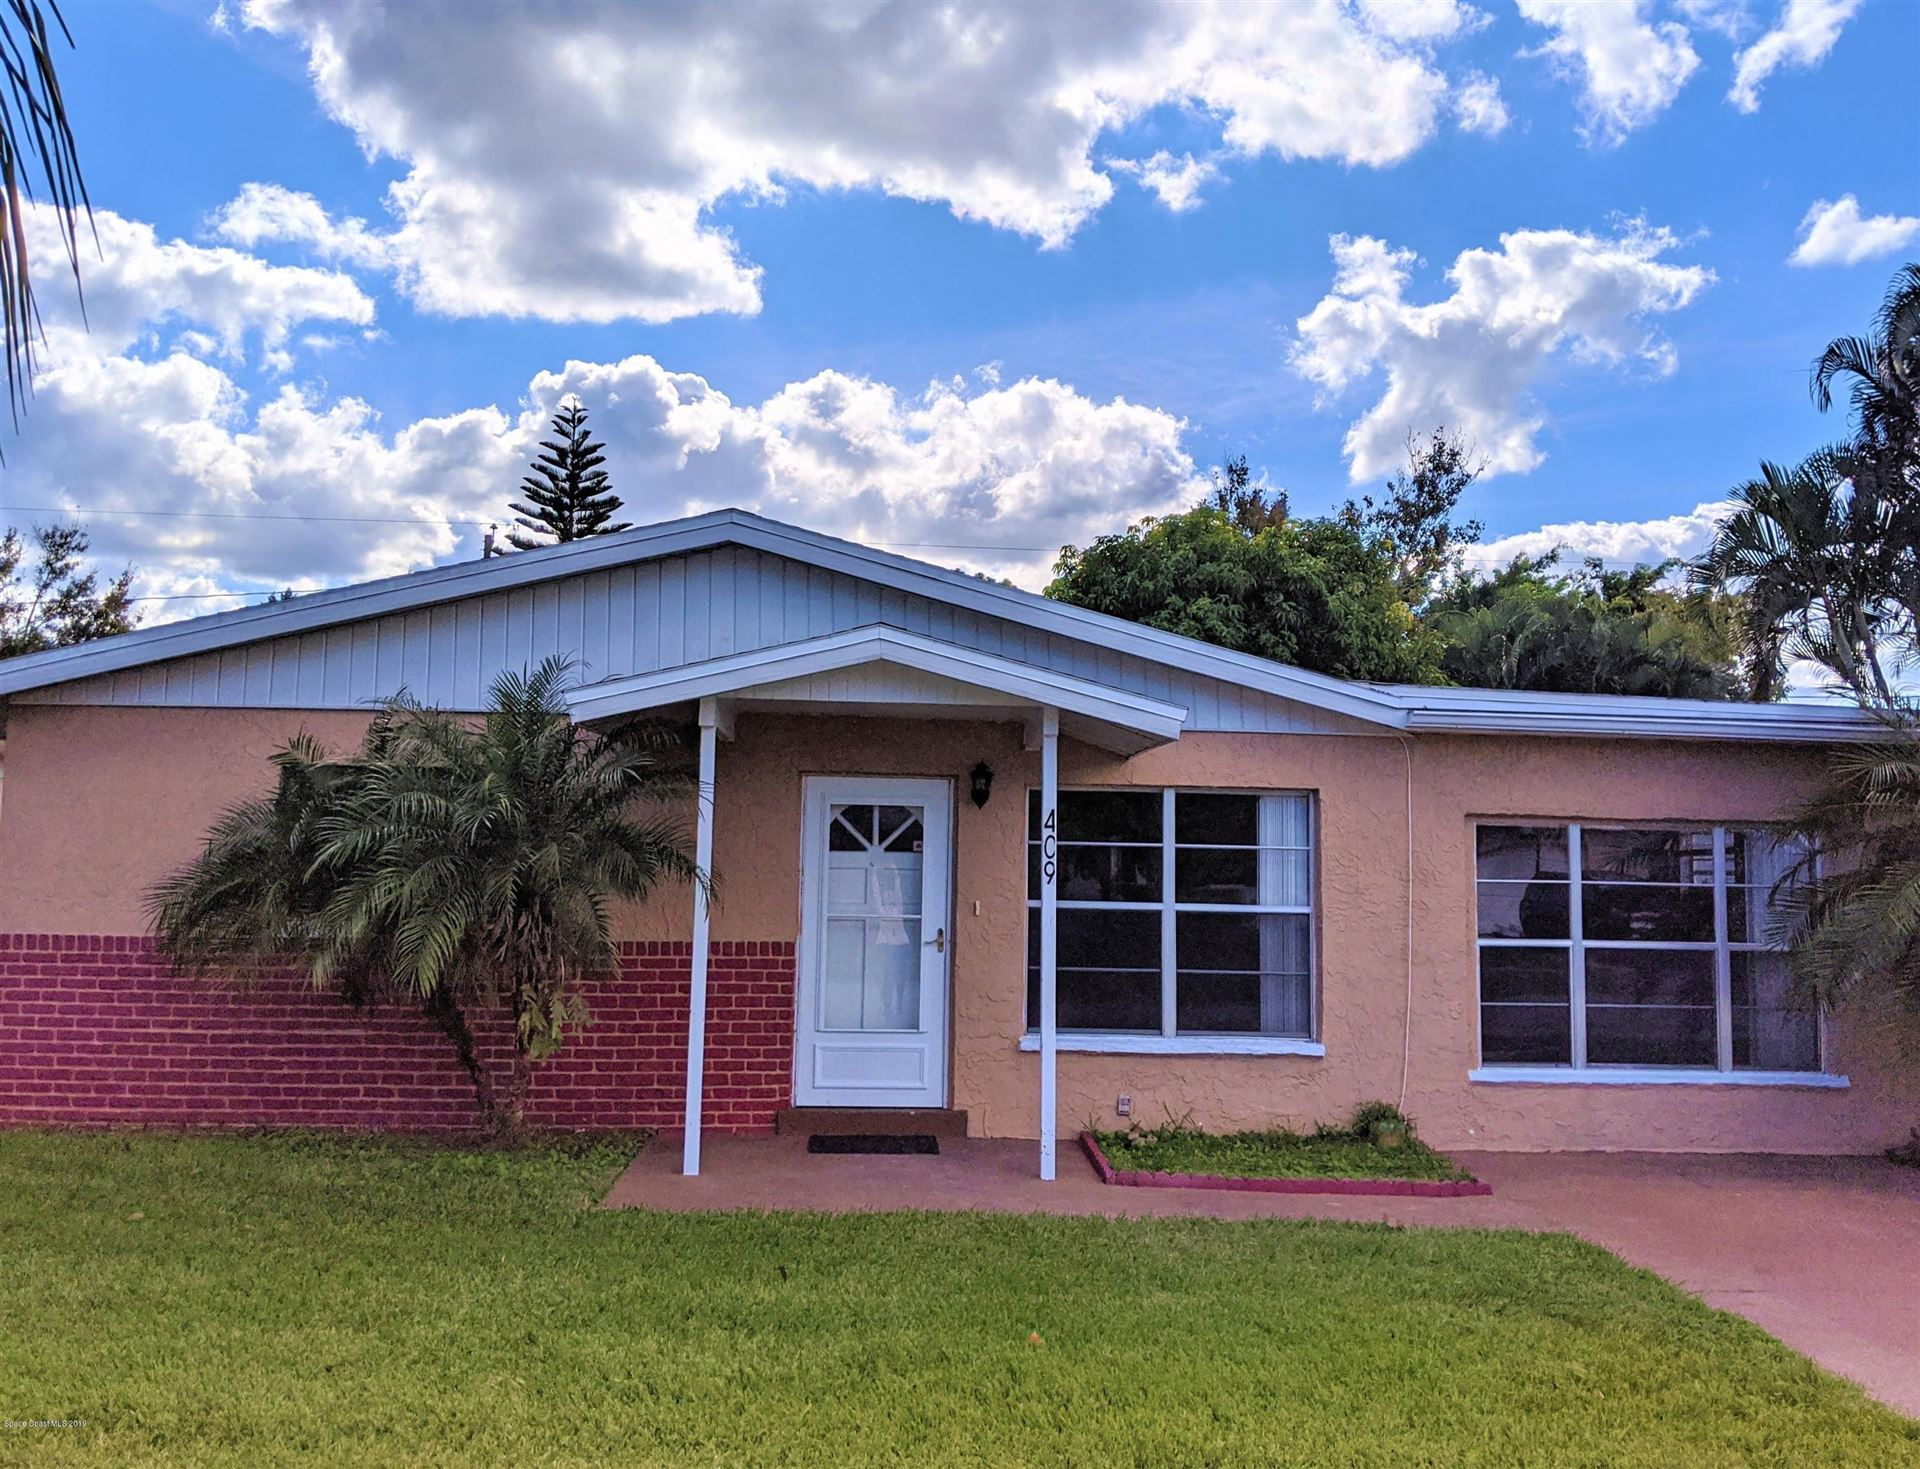 409 Count Street, Melbourne, FL 32901 - MLS#: 863014